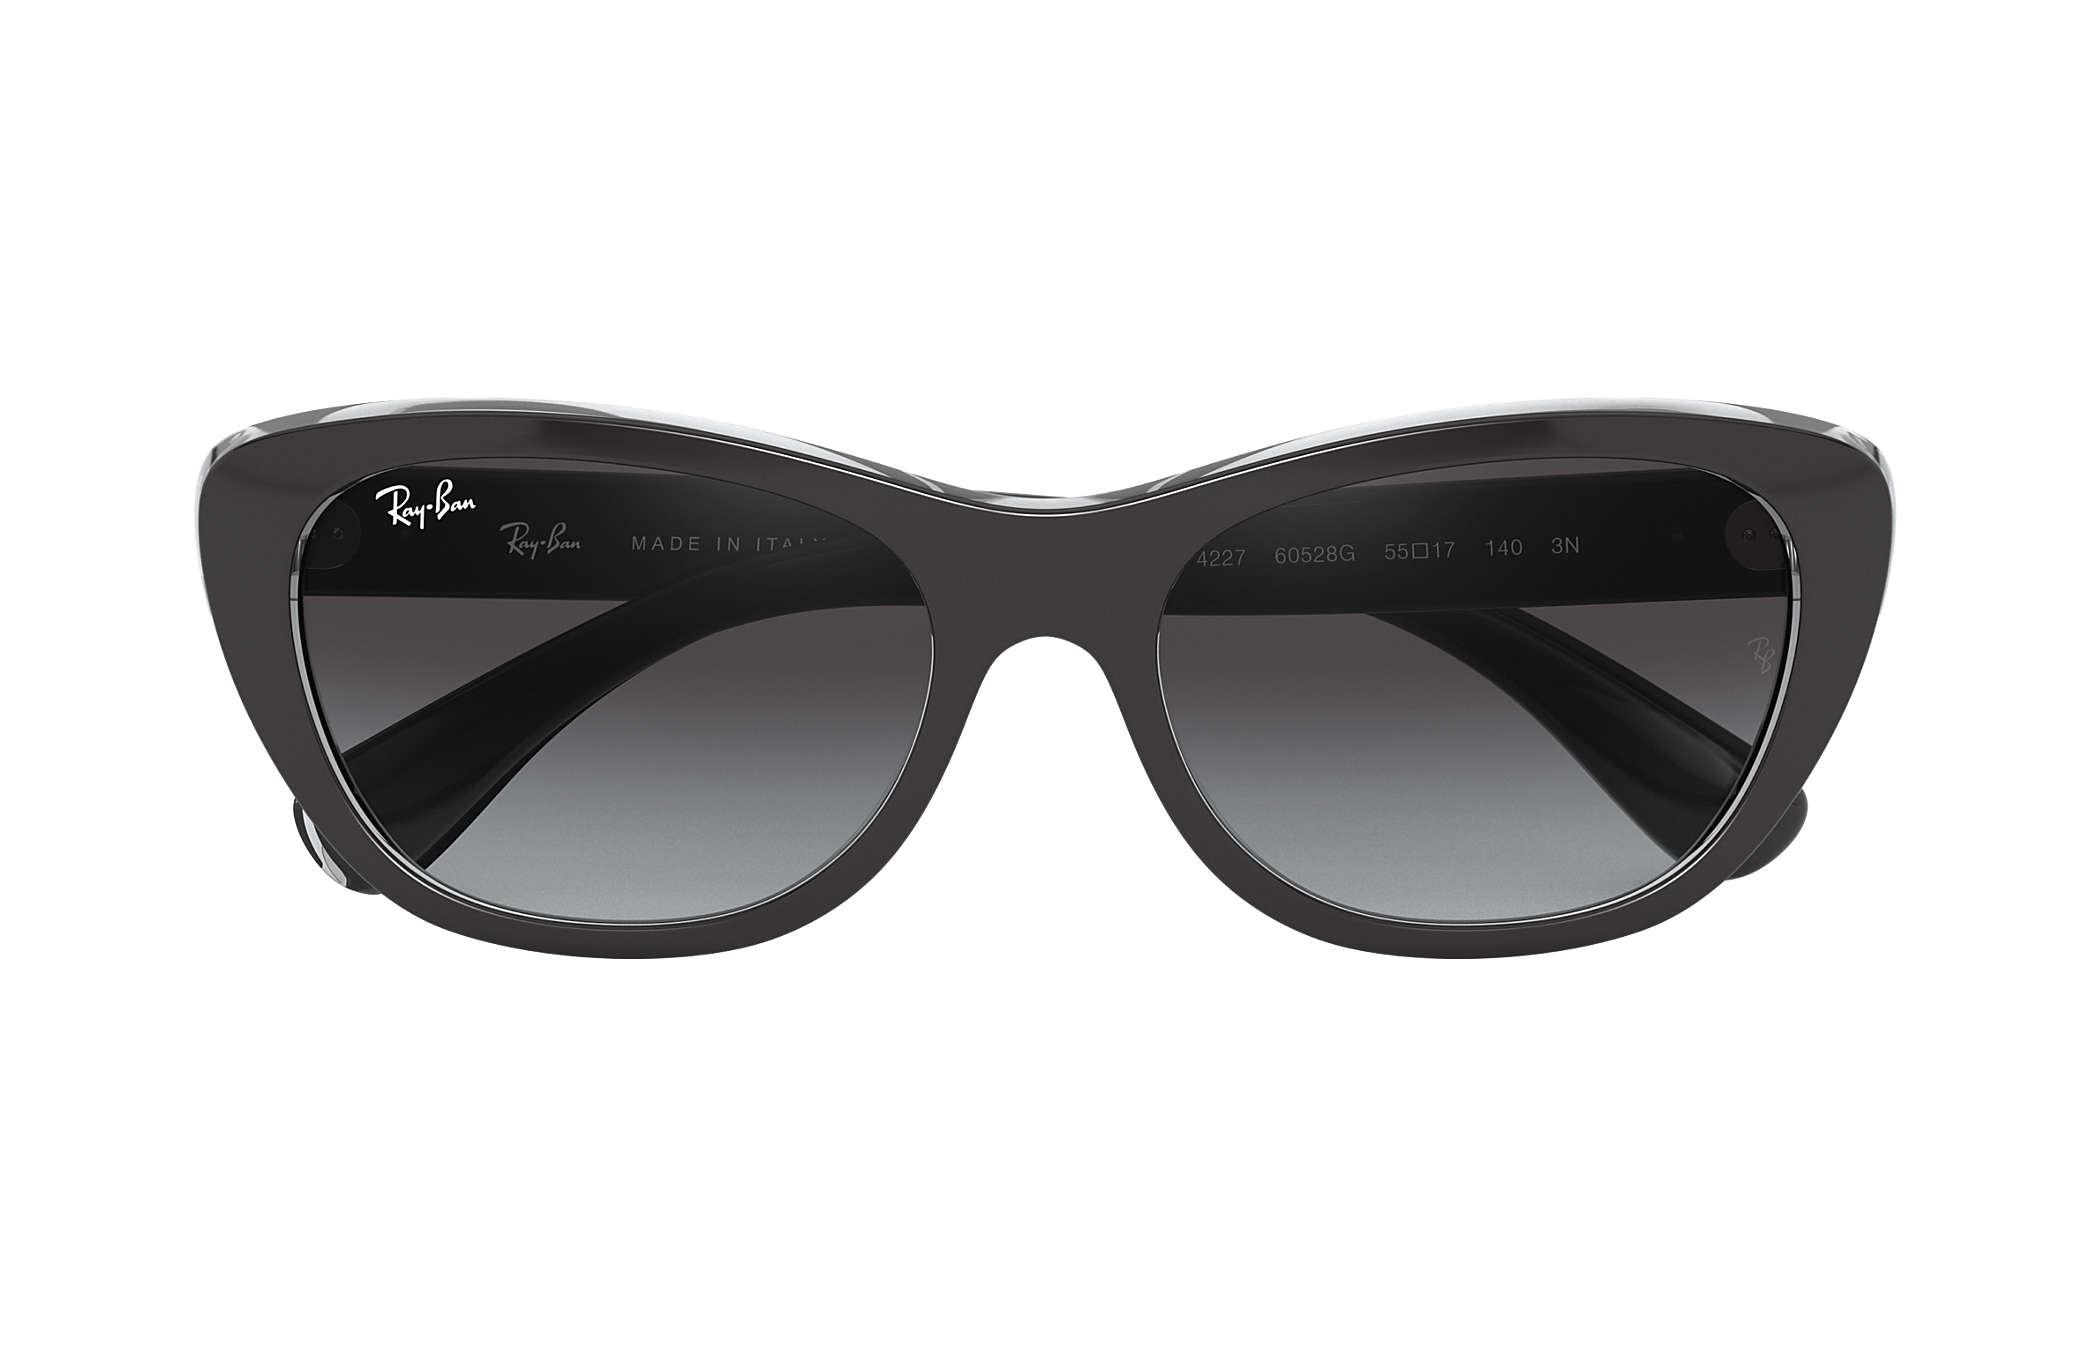 fedadff2c42db Ray-Ban RB4227 Black - Nylon - Grey Lenses - 0RB422760528G55